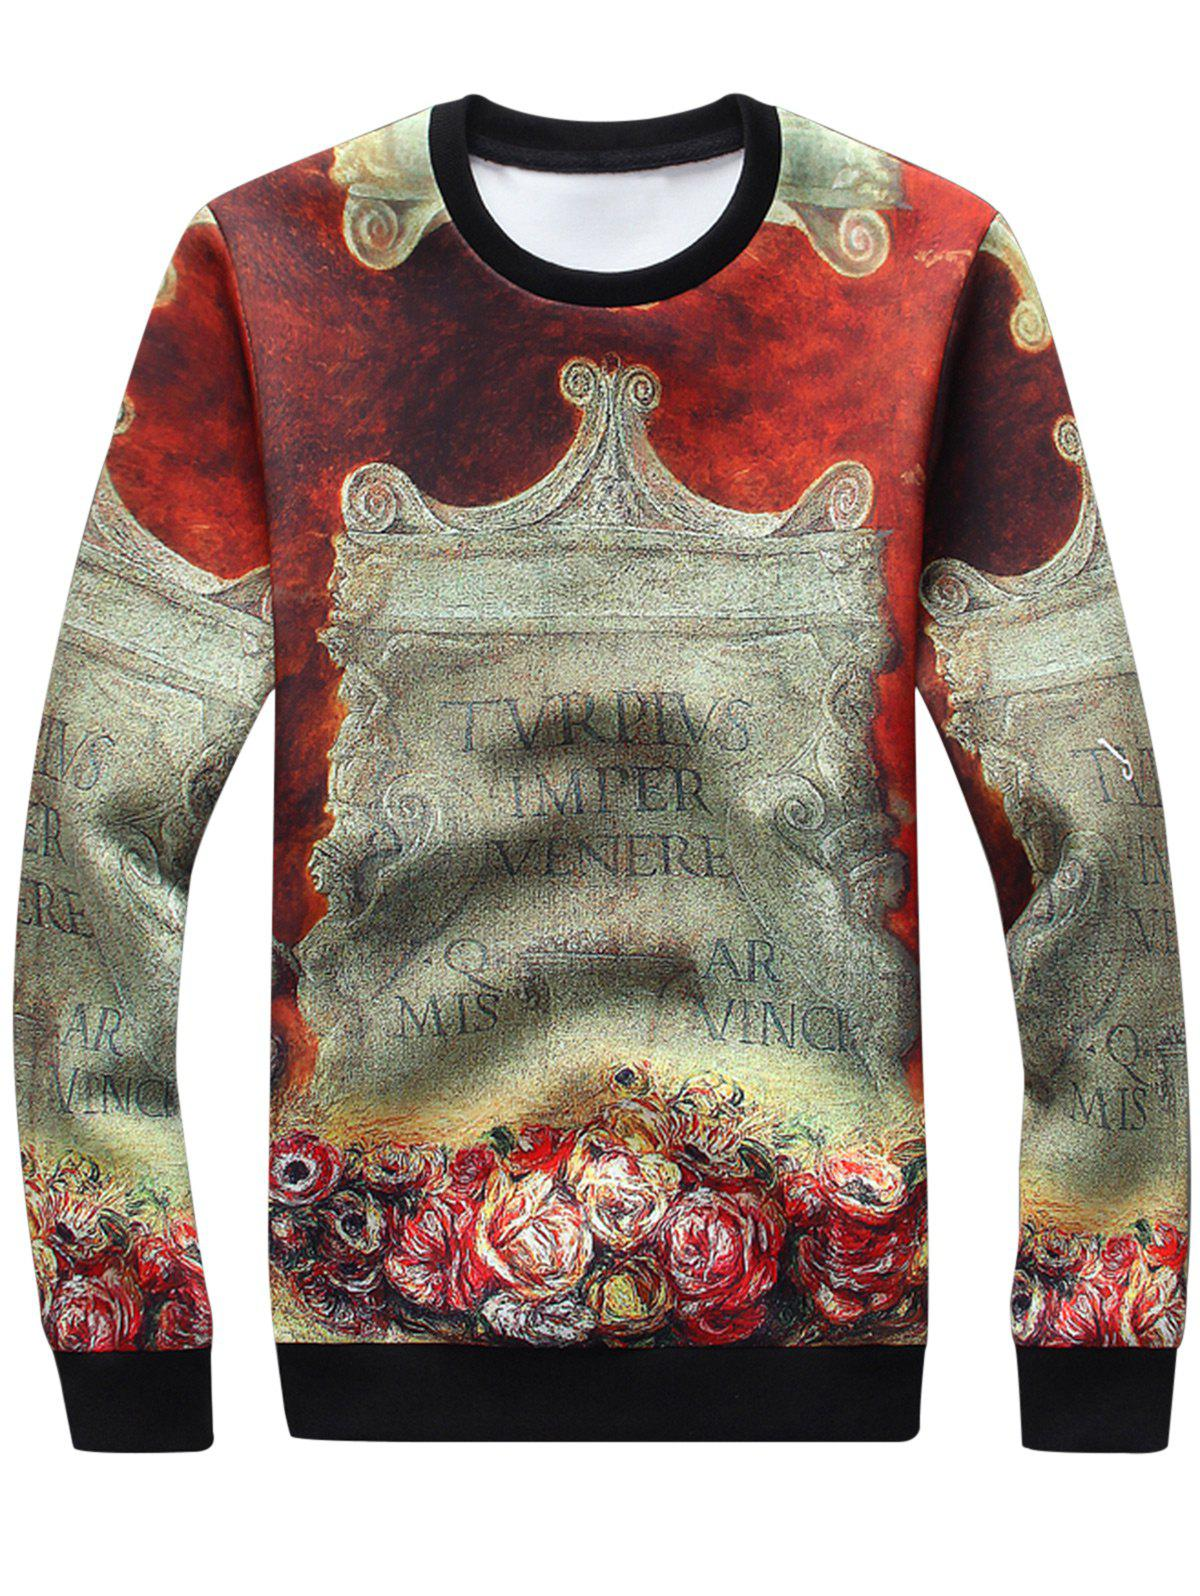 Sweatshirt à manches longues 3D Stele Graphic Print - multicolore XL